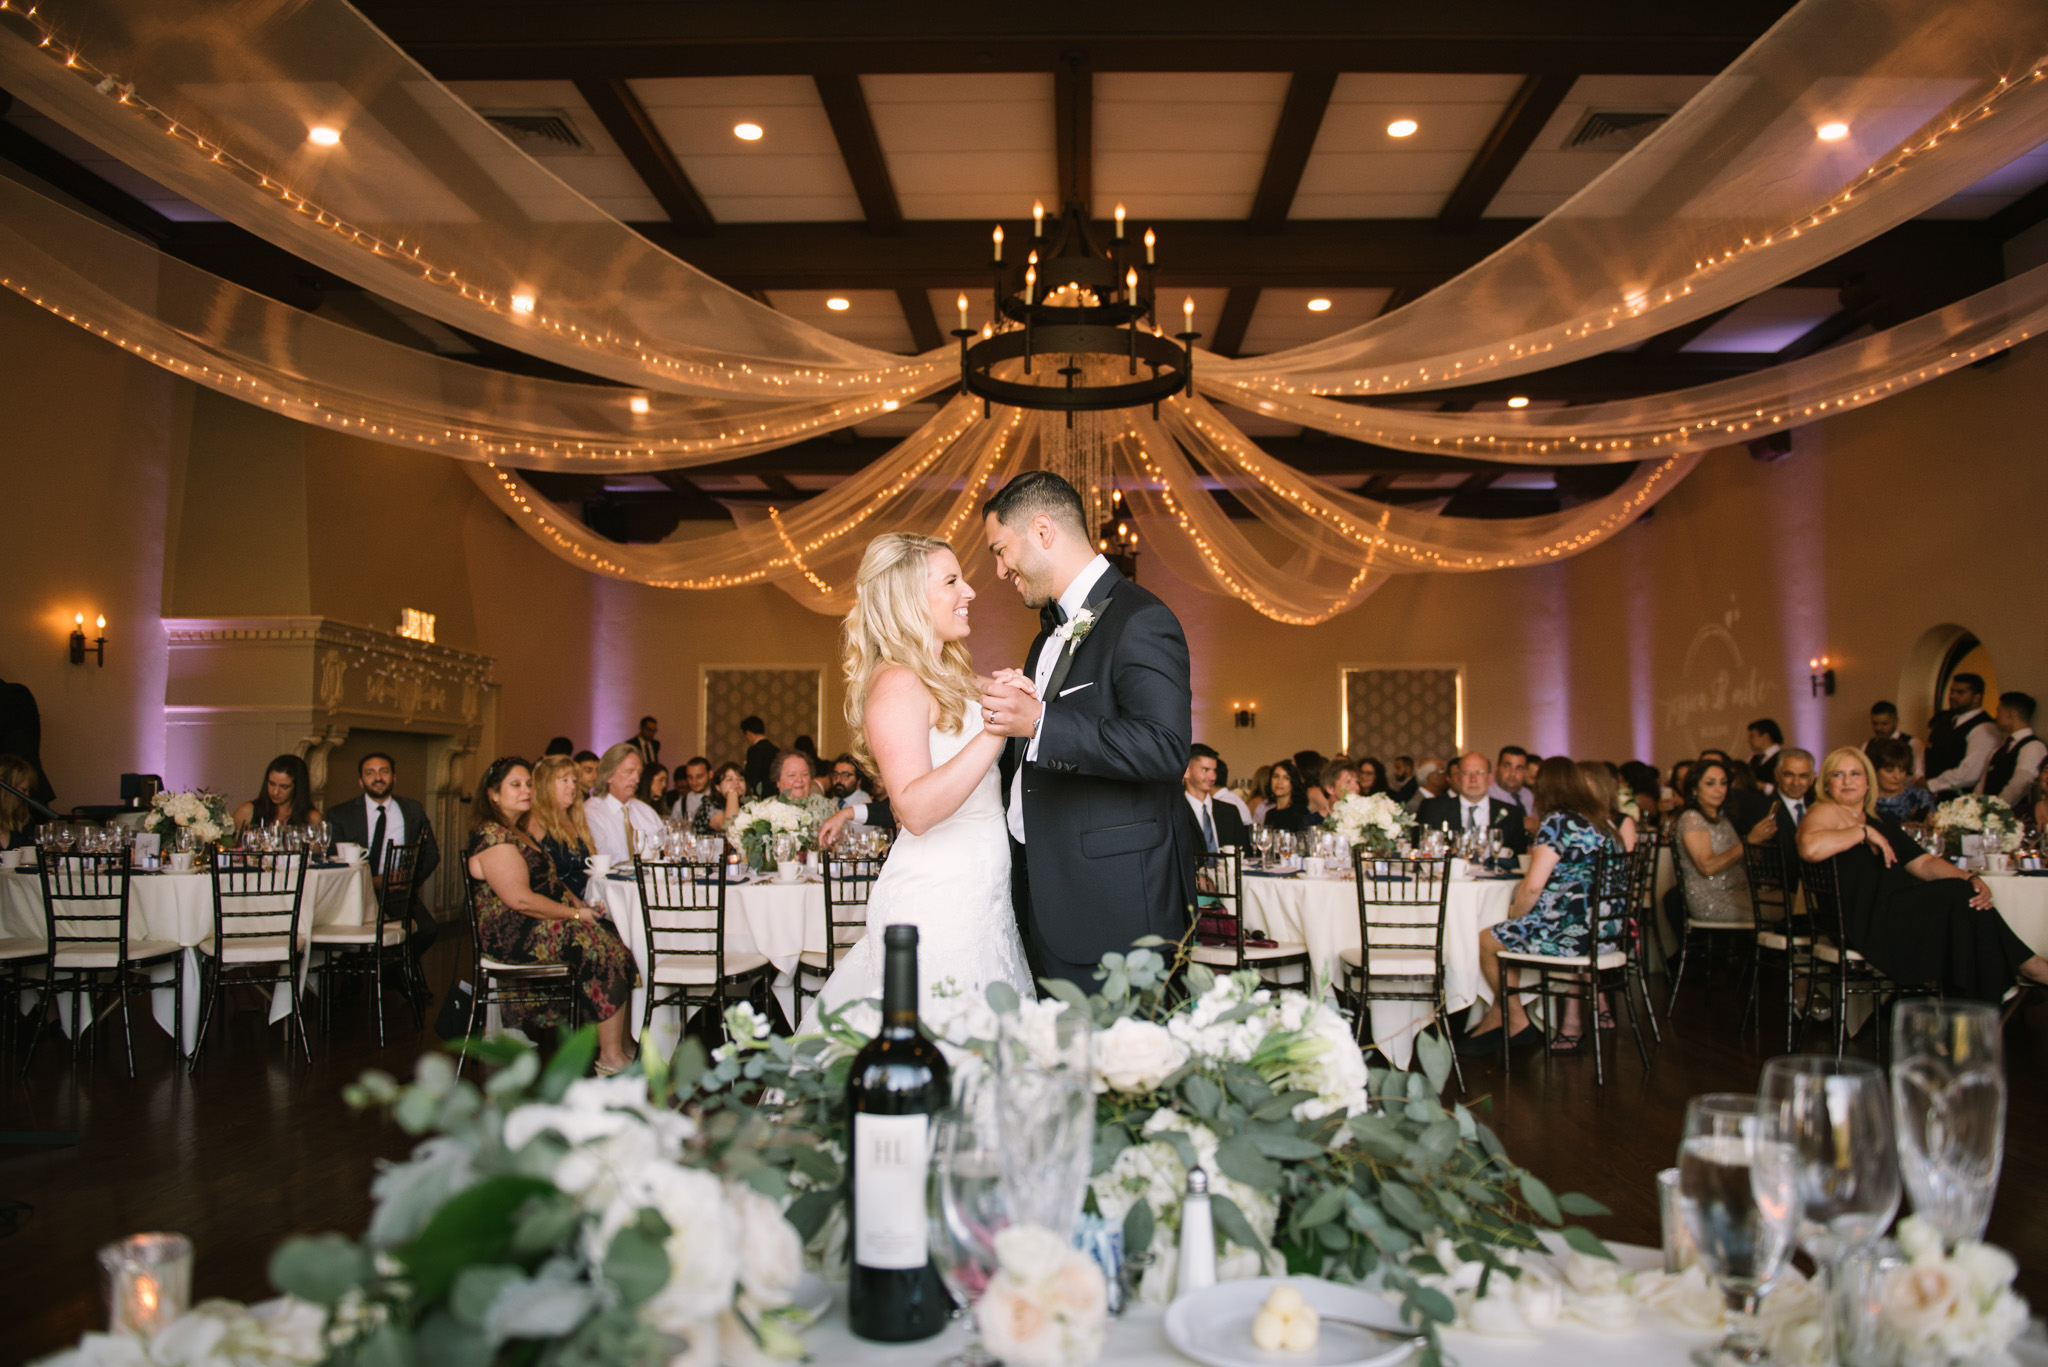 0502-JM-Altadena-Town-And-Country-Club-Los-Angeles-County-Wedding-Photography.jpg